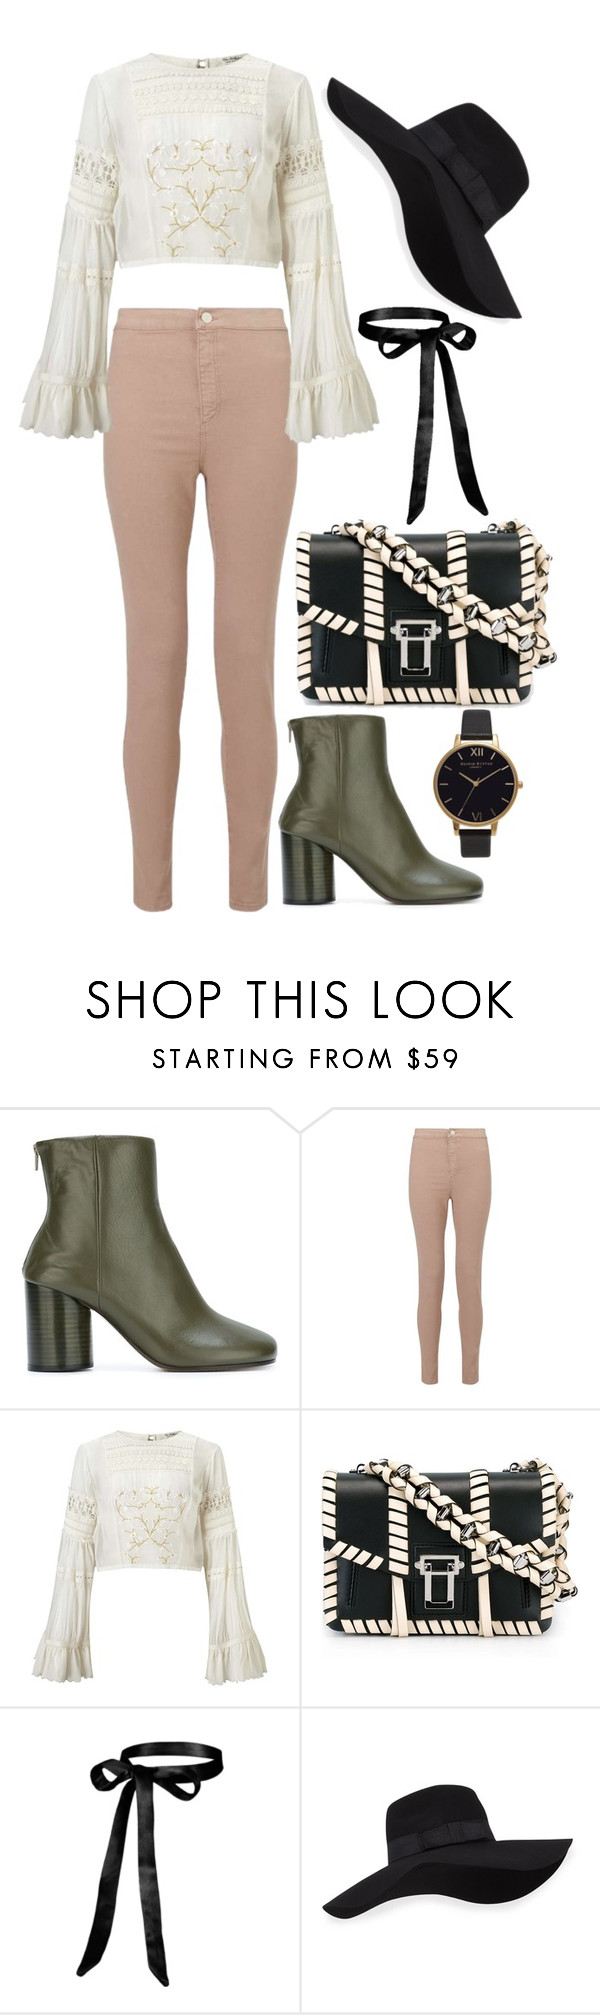 """""""Untitled #1419"""" by gabbyriera ❤ liked on Polyvore featuring Maison Margiela, Miss Selfridge, Proenza Schouler, San Diego Hat Co. and Olivia Burton"""